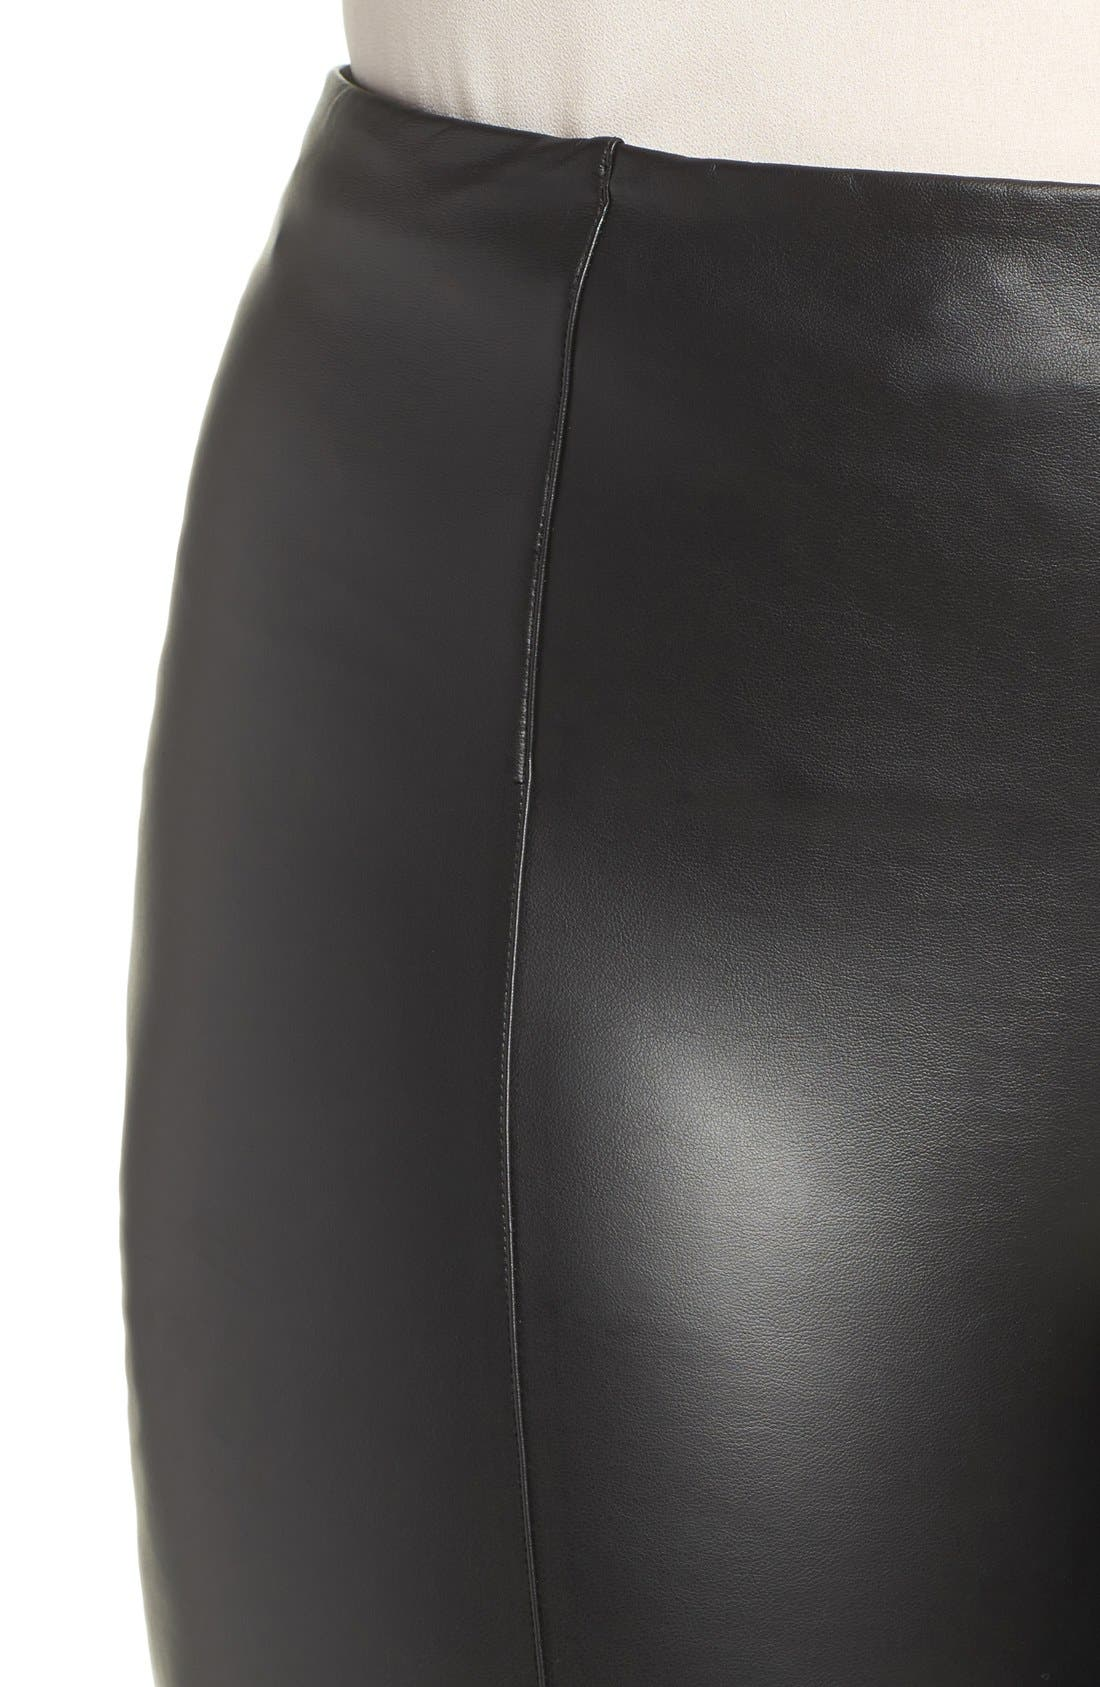 Alternate Image 4  - Lyssé High Waist Faux Leather Leggings (Plus Size)